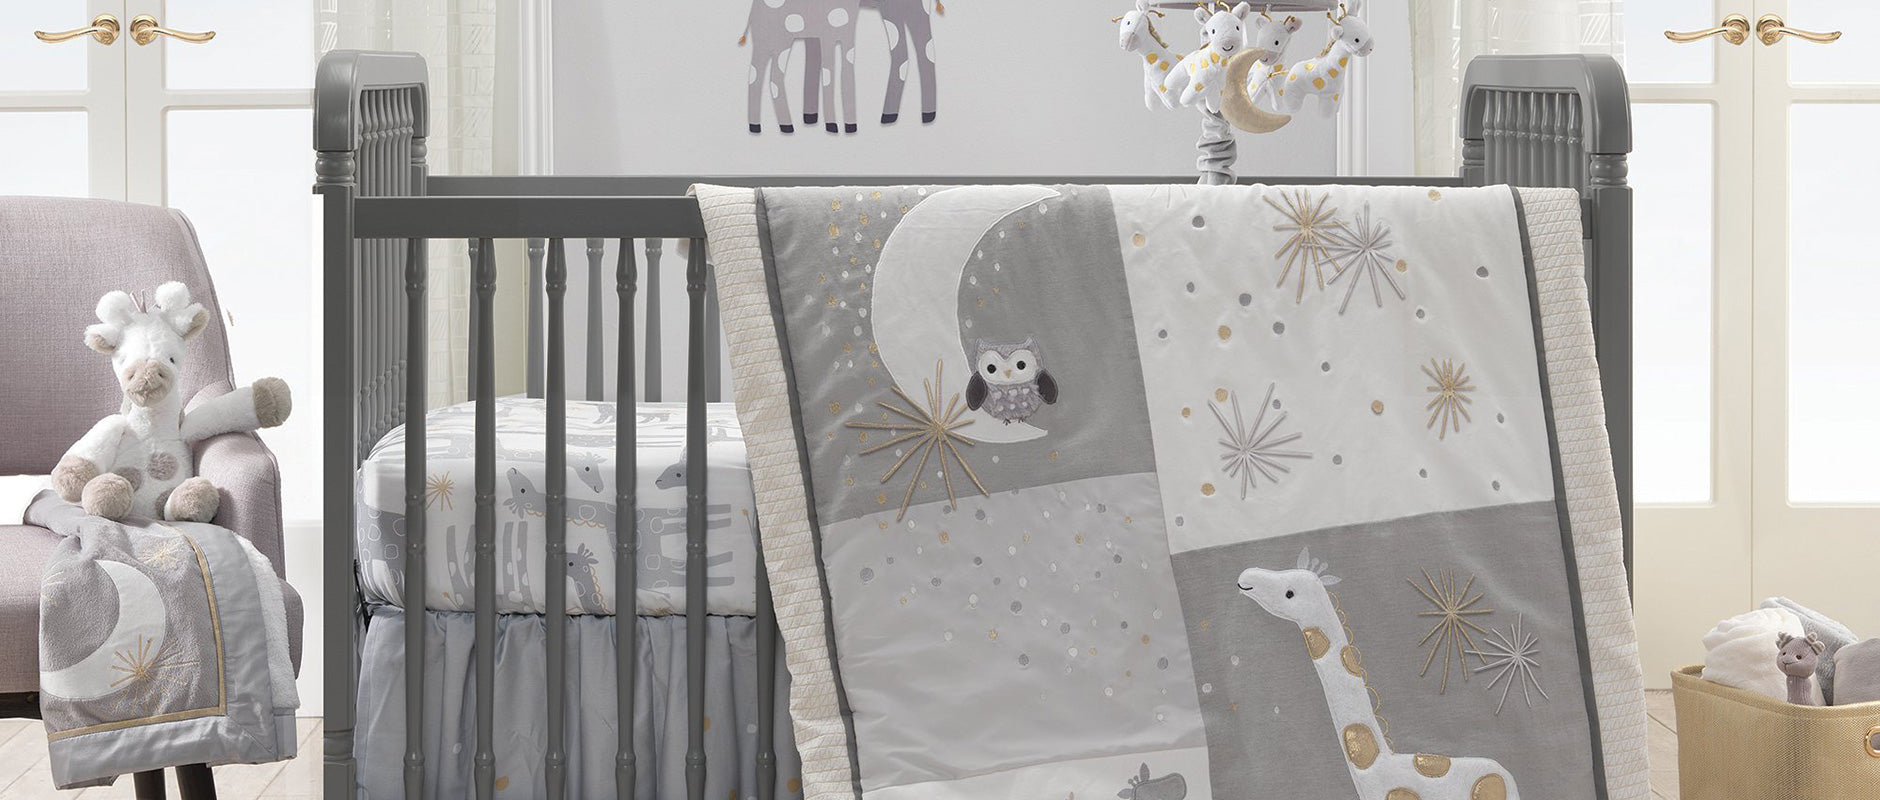 Lambs & Ivy Moonbeams Baby Bedding